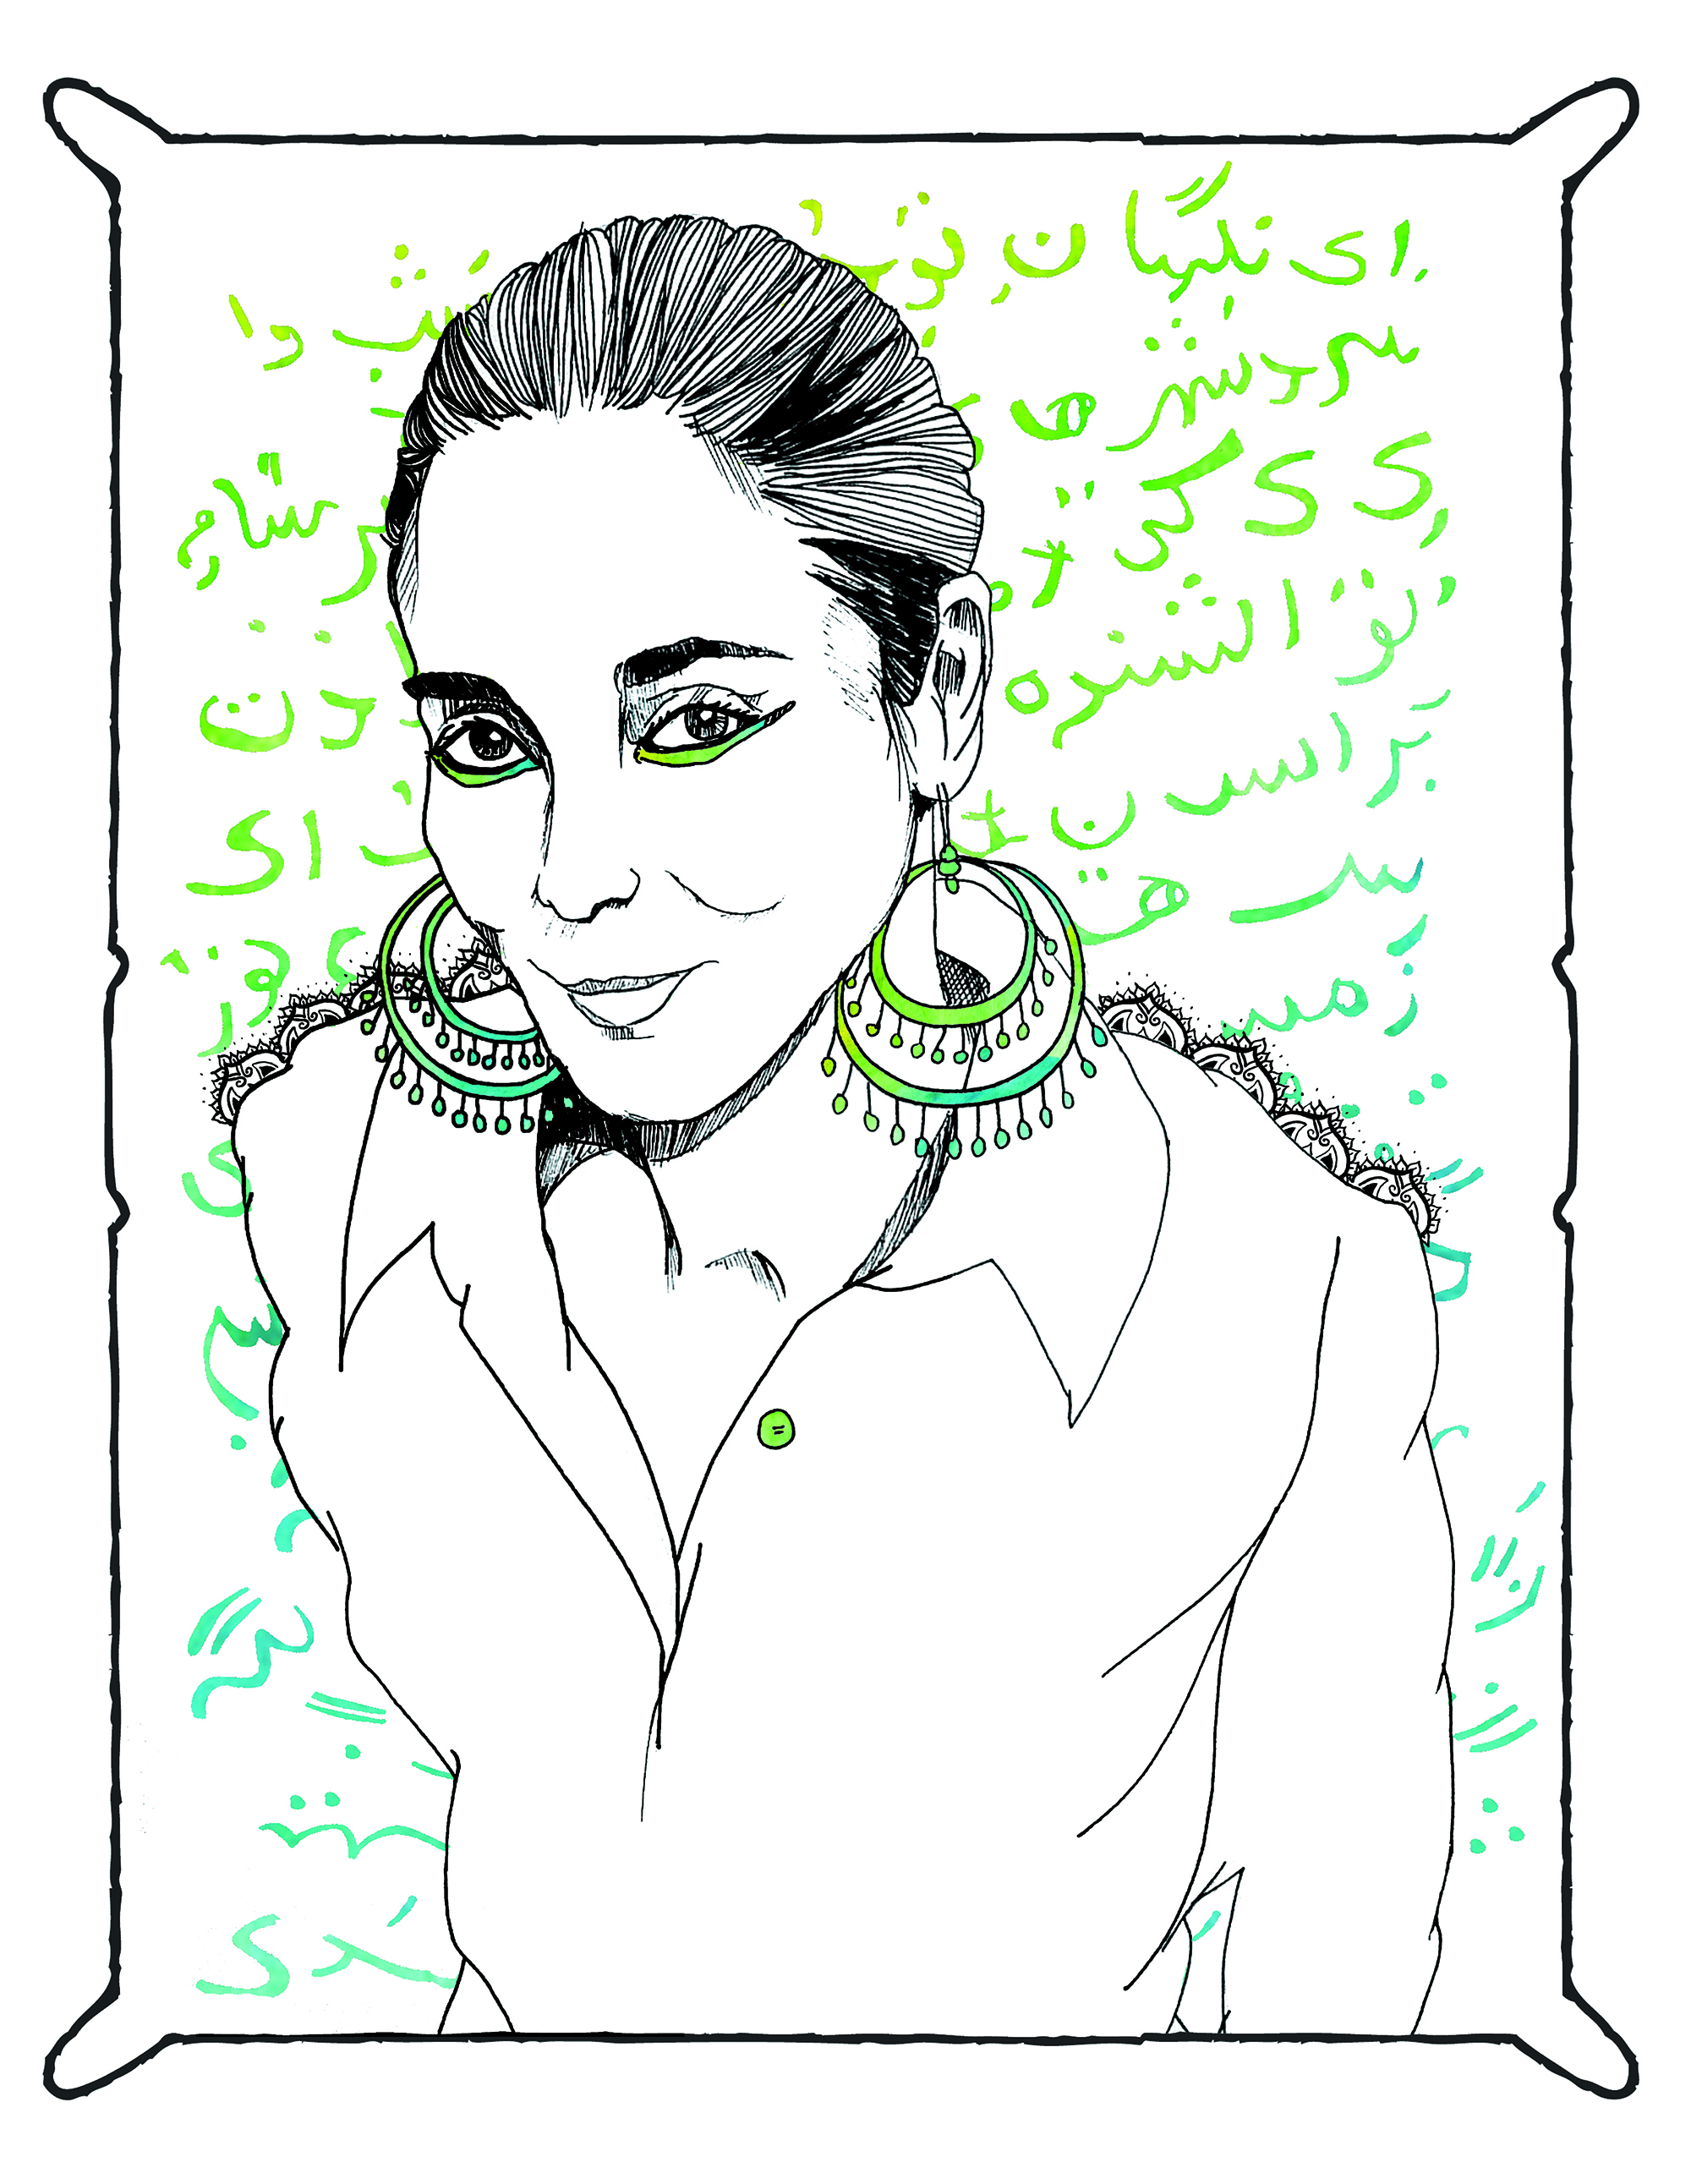 Shirin_Neshat_Dossier_Journal_Jess_Rotter.jpg